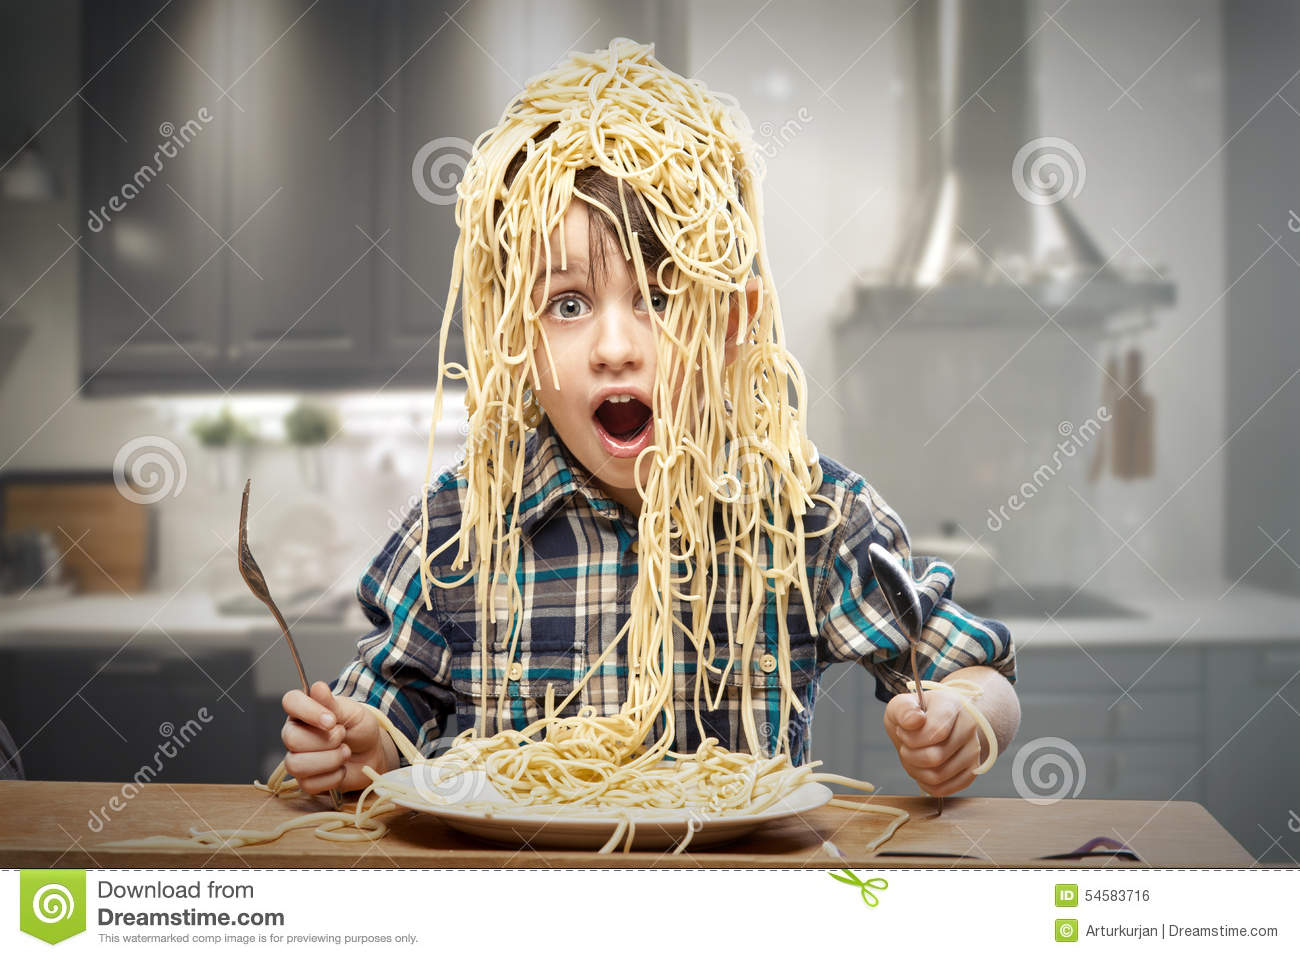 4 person kitchen table weight scale startled yound boy with noodles stock photo - image: 54583716